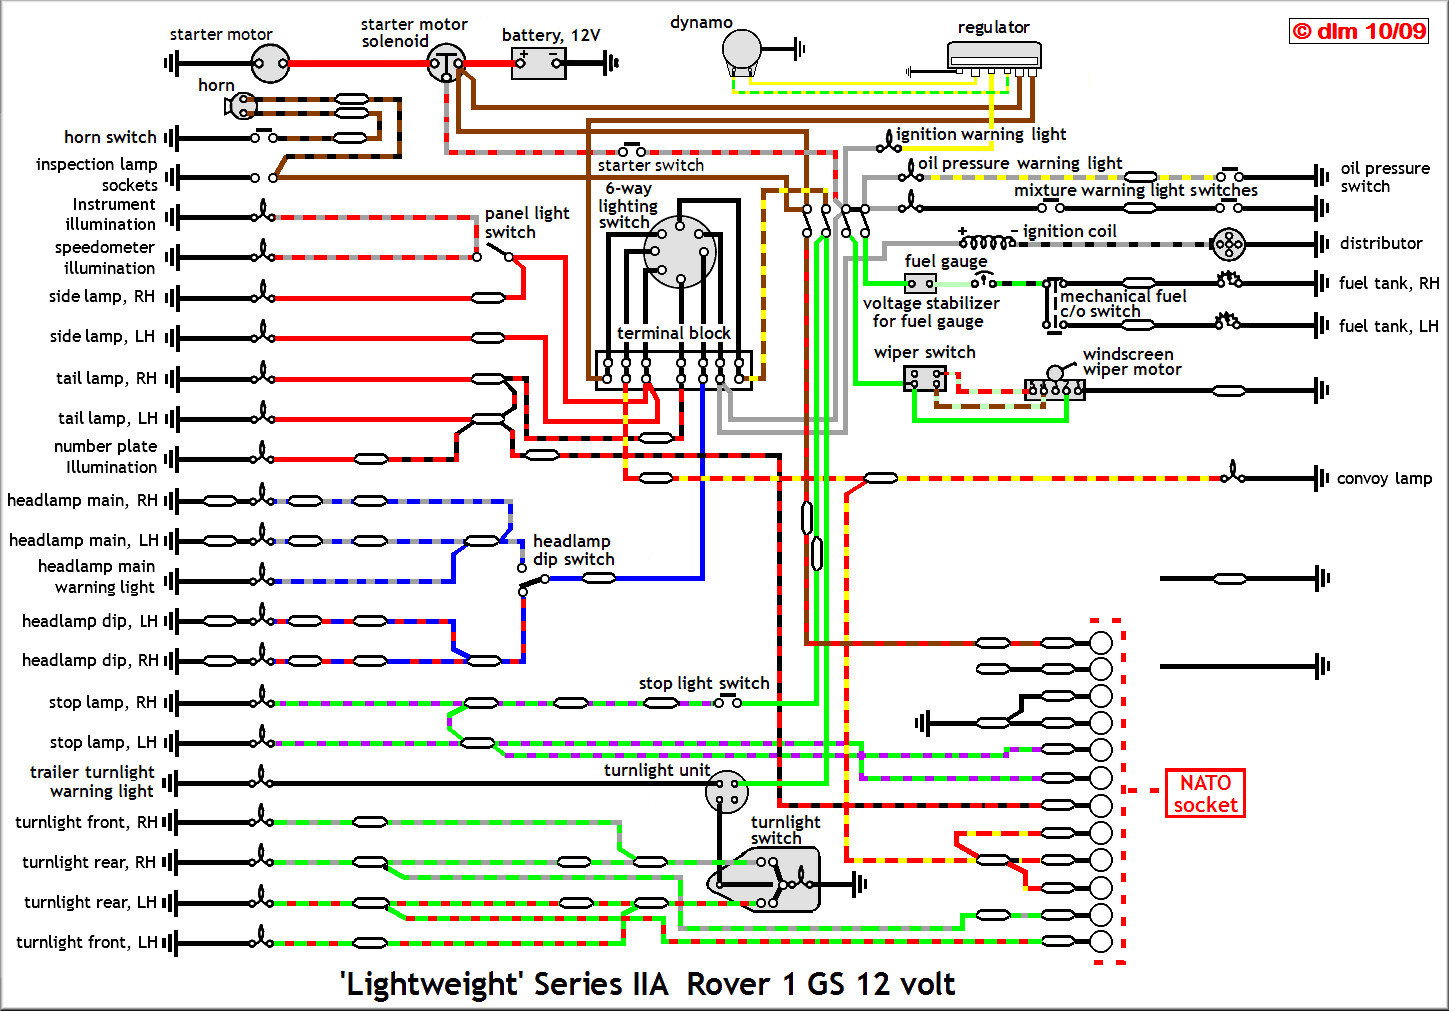 Land Rover Lightweight on engine mounting diagram, engine repair diagram, engine camshaft diagram, engine valves diagram, wheels diagram, engine starter diagram, engine distributor diagram, engine flow diagram, engine cooling diagram, engine fan diagram, engine power diagram, engine assembly diagram, engine housing diagram, engine block diagram, engine wiring harness, engine interior diagram, engine alternator diagram, engine lights diagram, engine exhaust diagram, engine generator diagram,